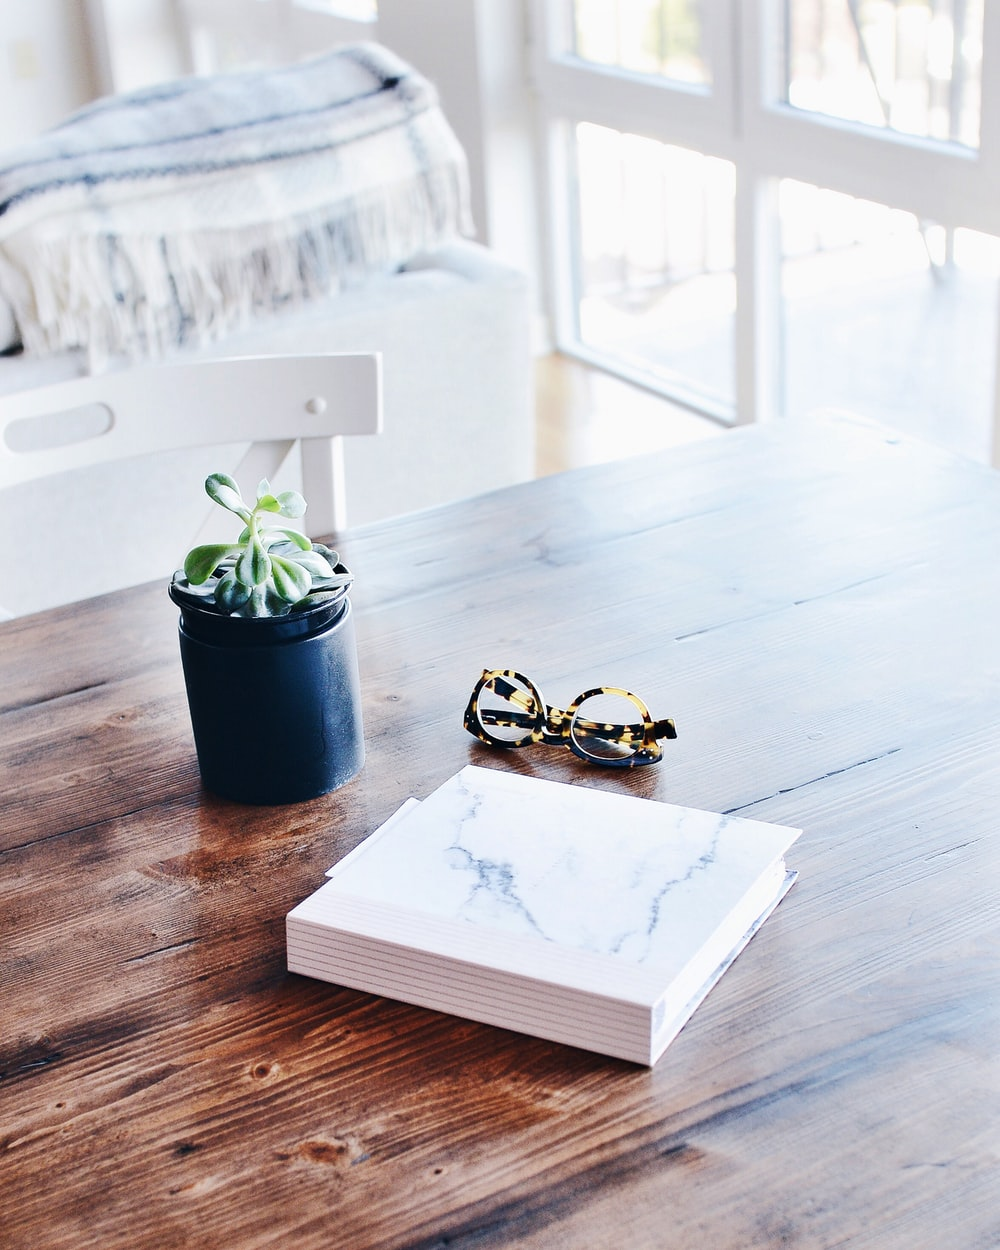 hardbound book beside eyeglasses and succulent plant on table inside room